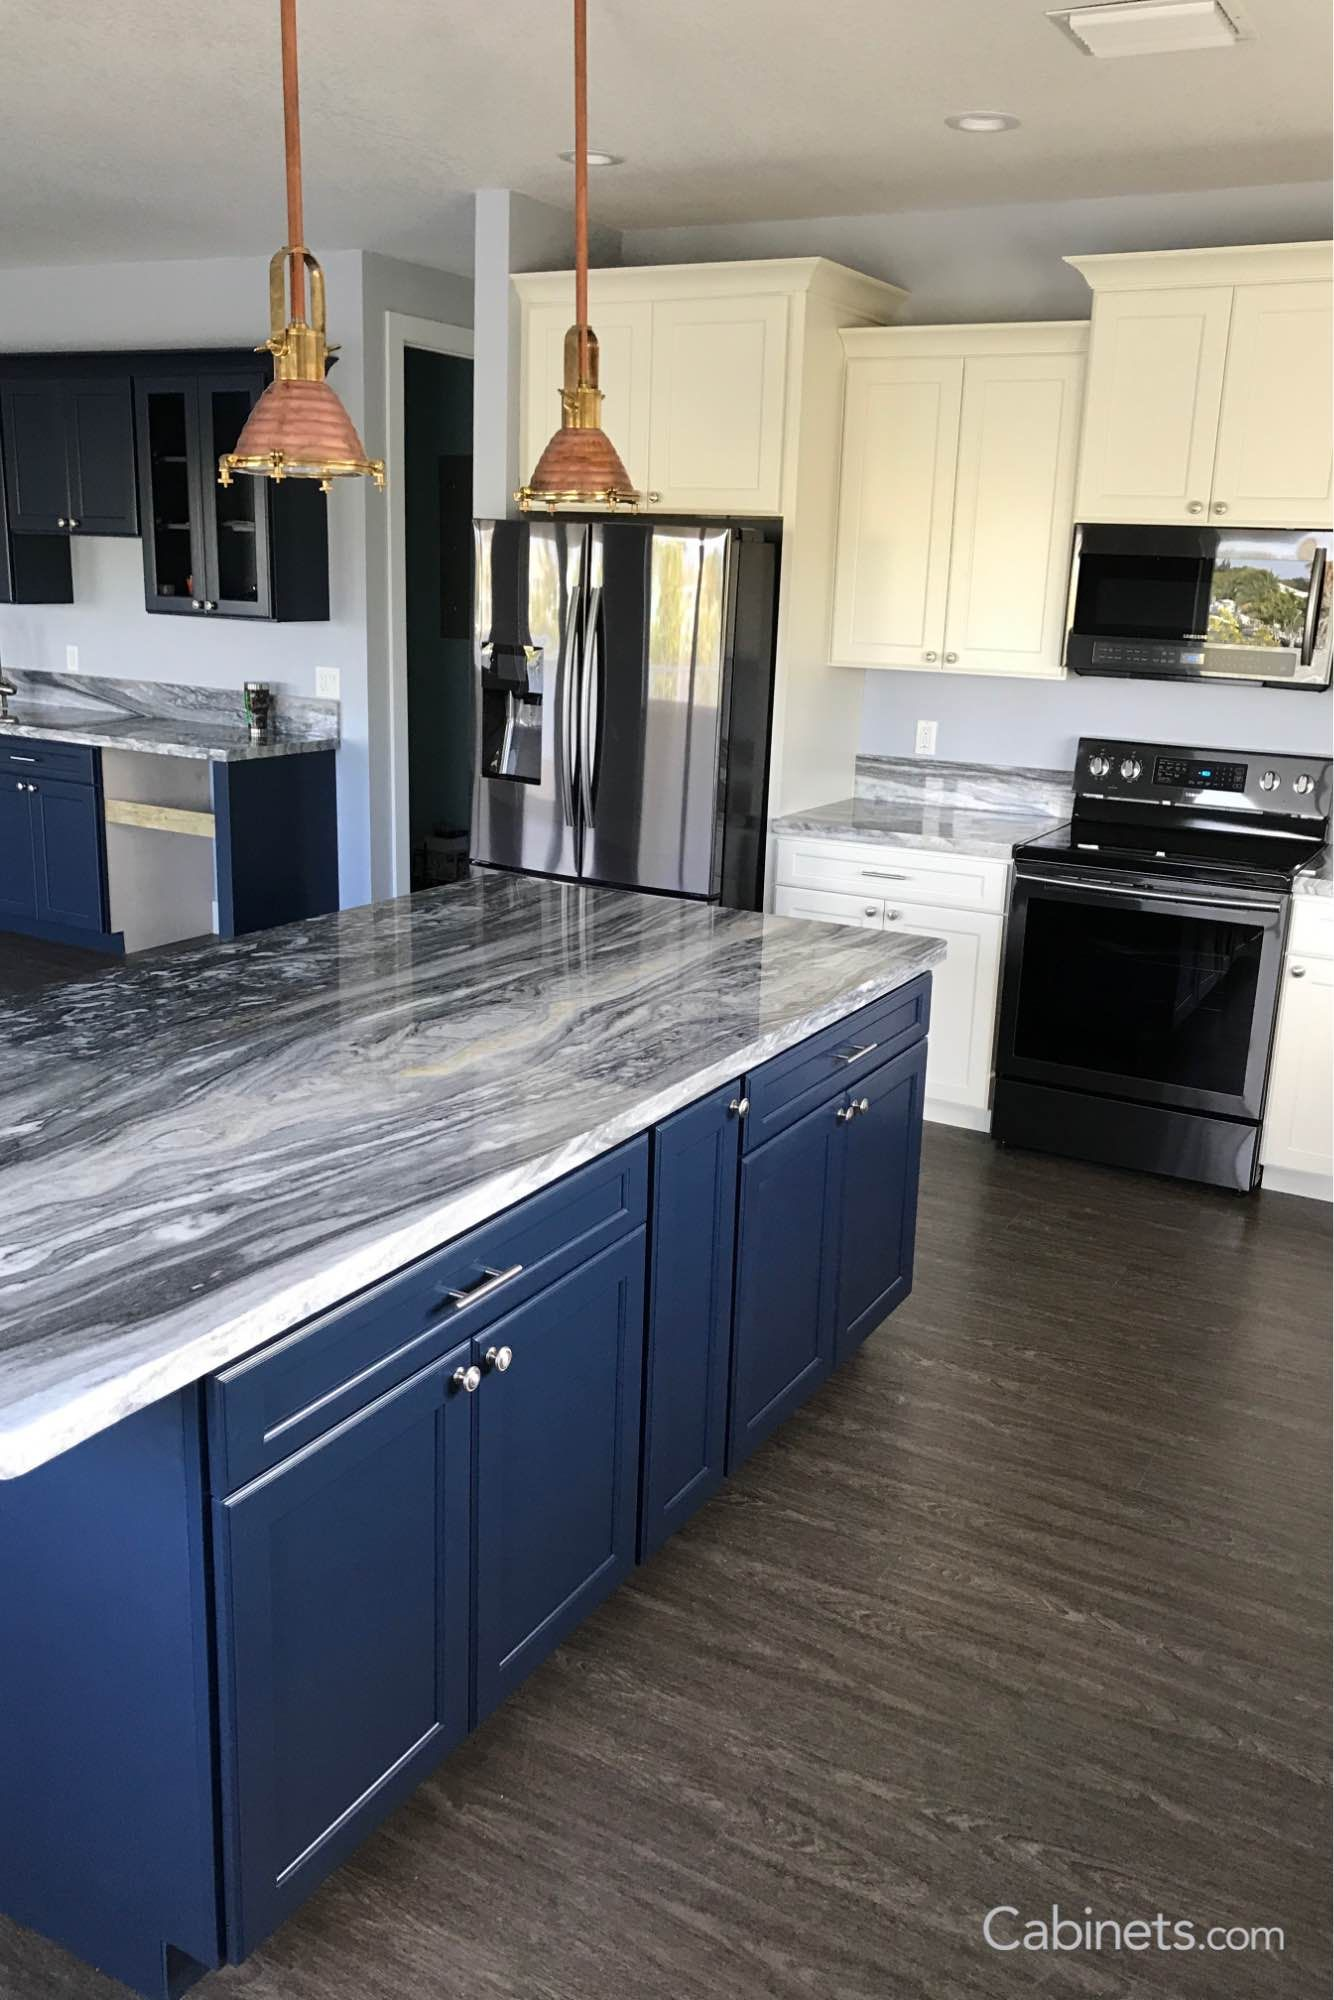 Check Out This Nautical Inspired Kitchen Using Our Baldwin Naval Alabaster Cabinets Online Kitchen Cabinets Kitchen Inspirations Kitchen Design